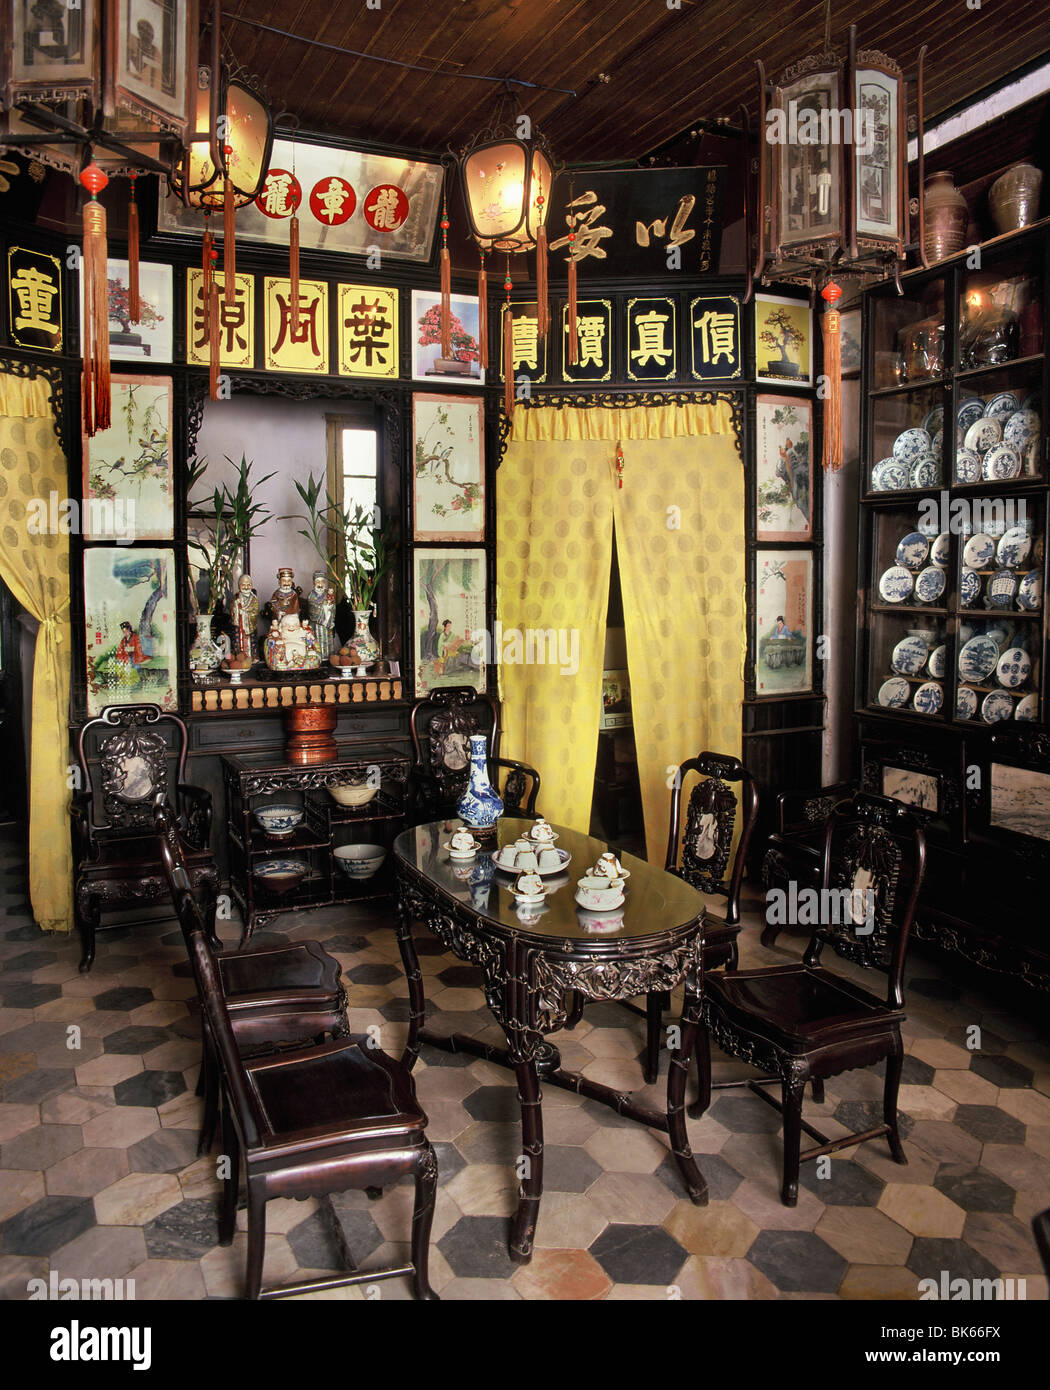 Reception room of Diep Dong Nguyen House, Hoi An, Vietnam - Stock Image